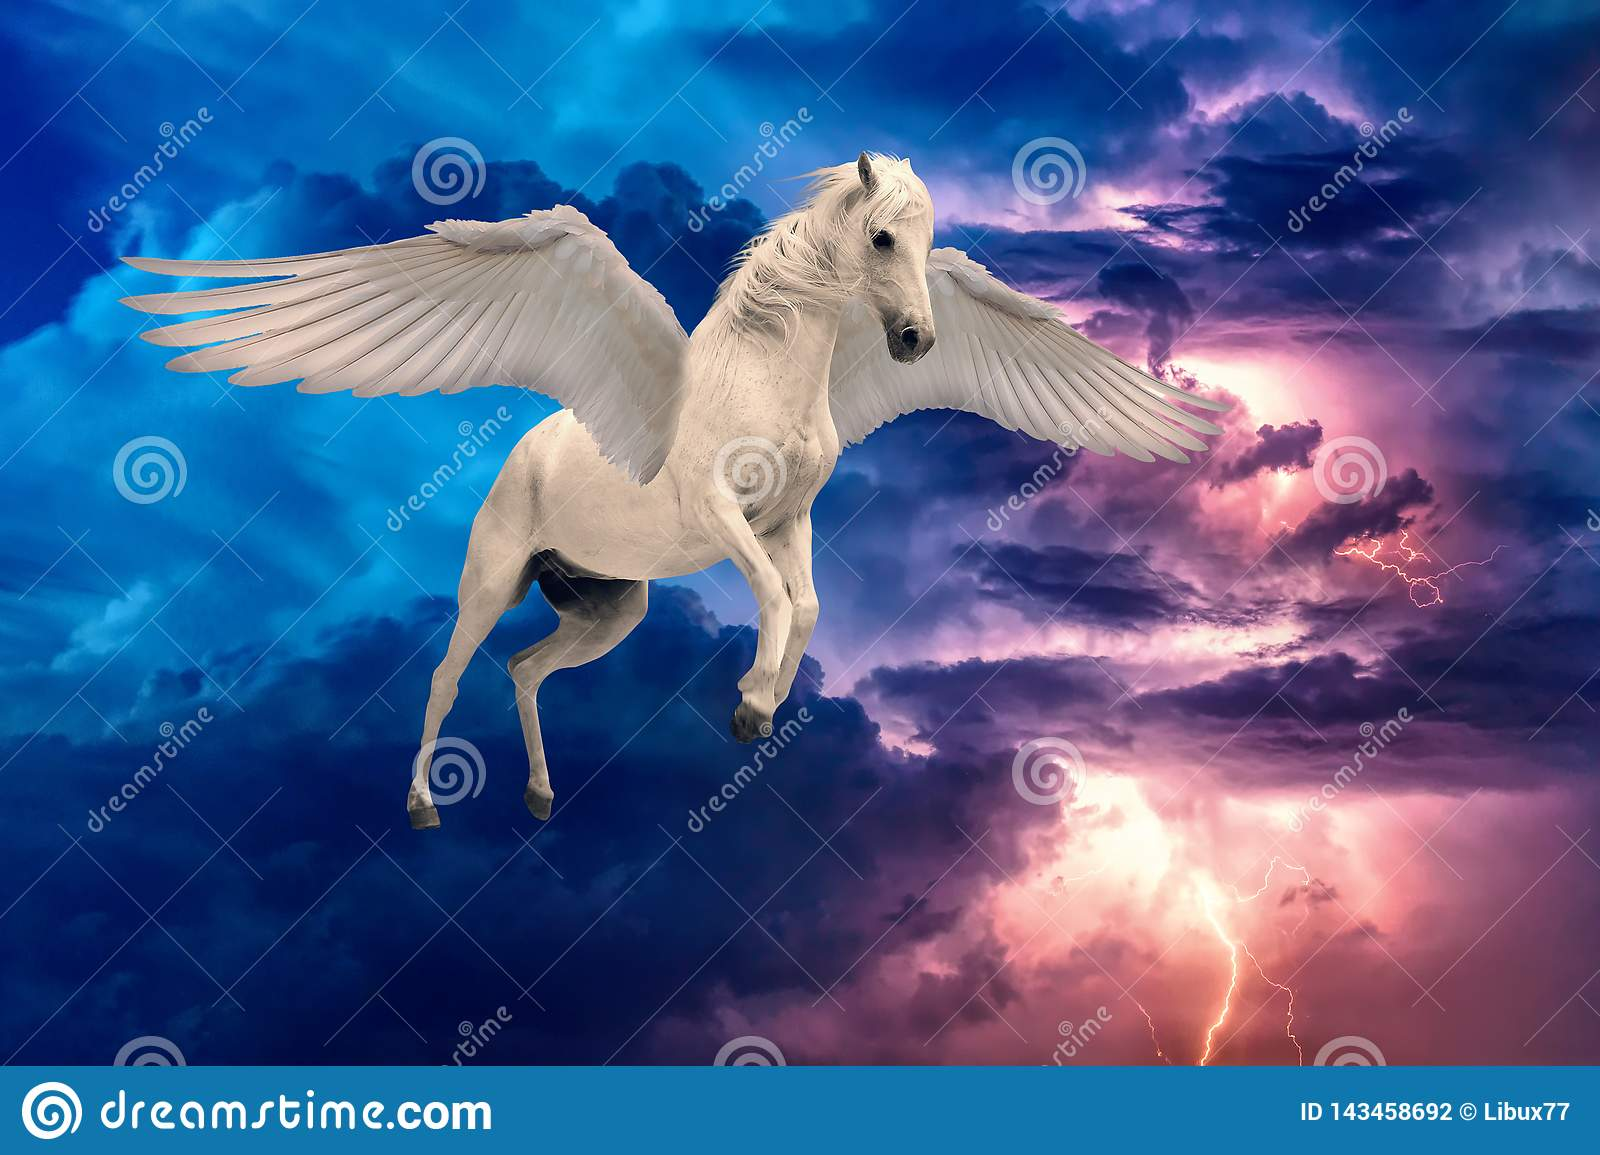 973 Horse Wings Photos Free Royalty Free Stock Photos From Dreamstime